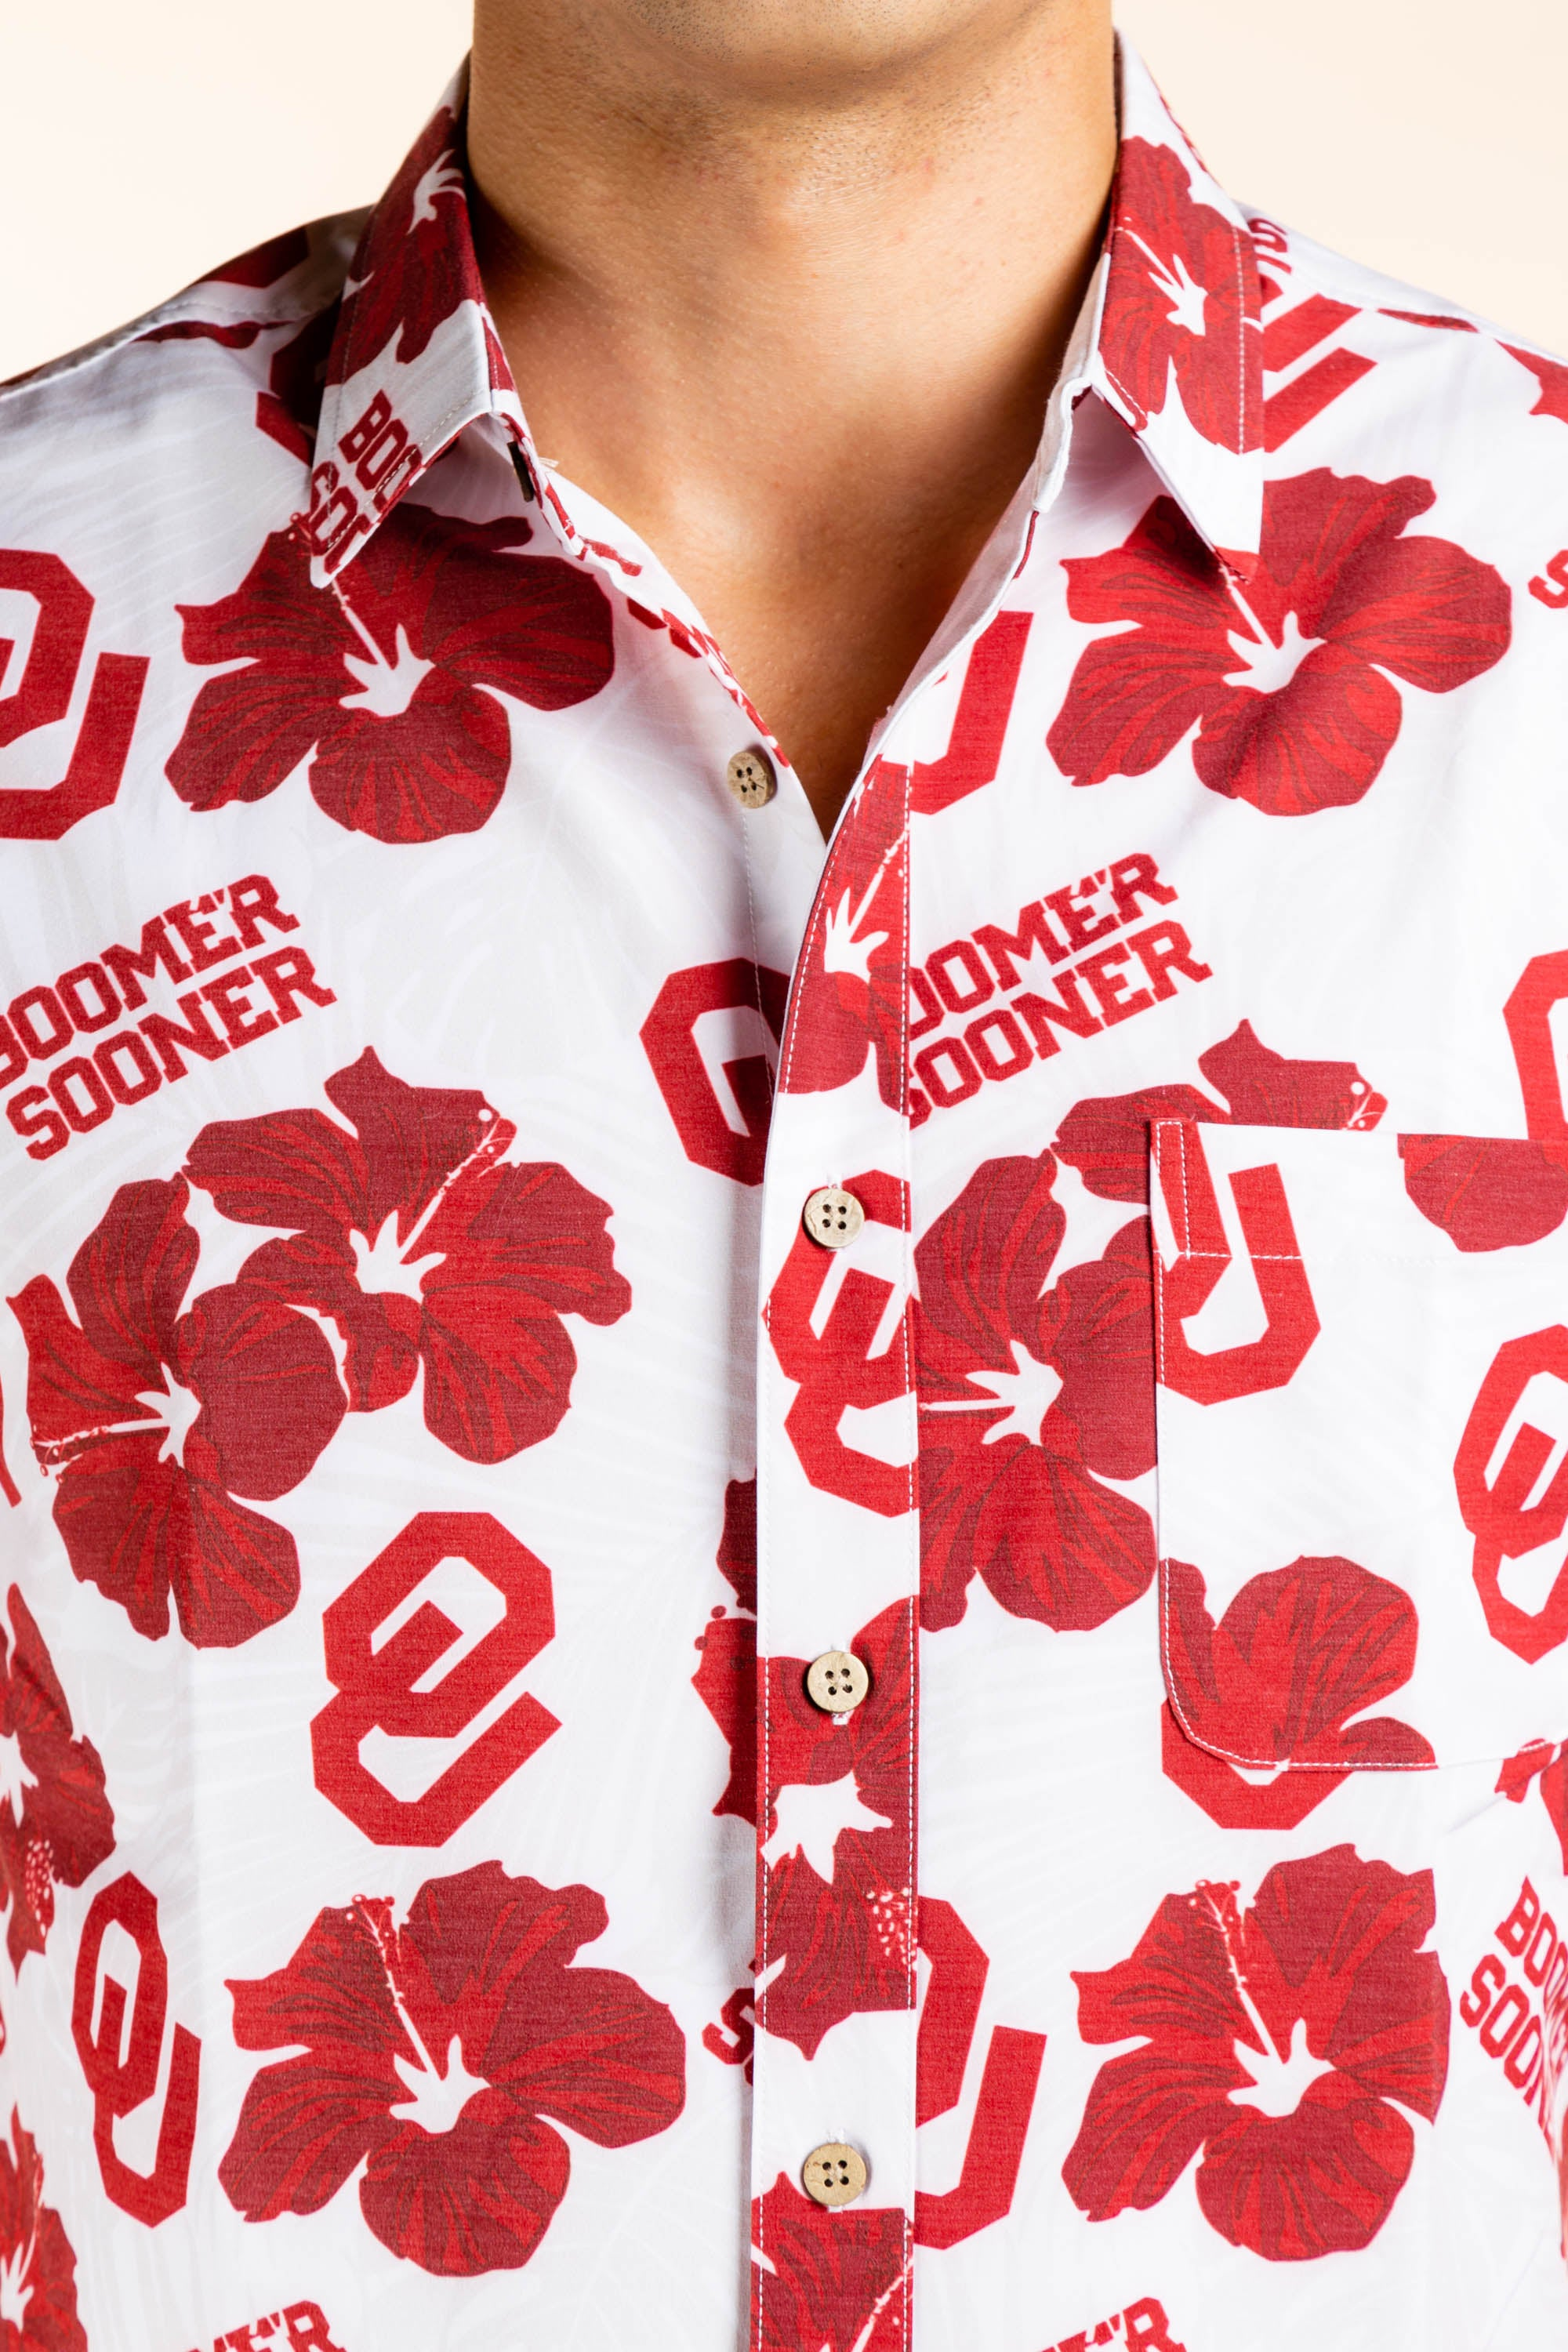 Oklahoma University Sooners Hawaiian Shirt